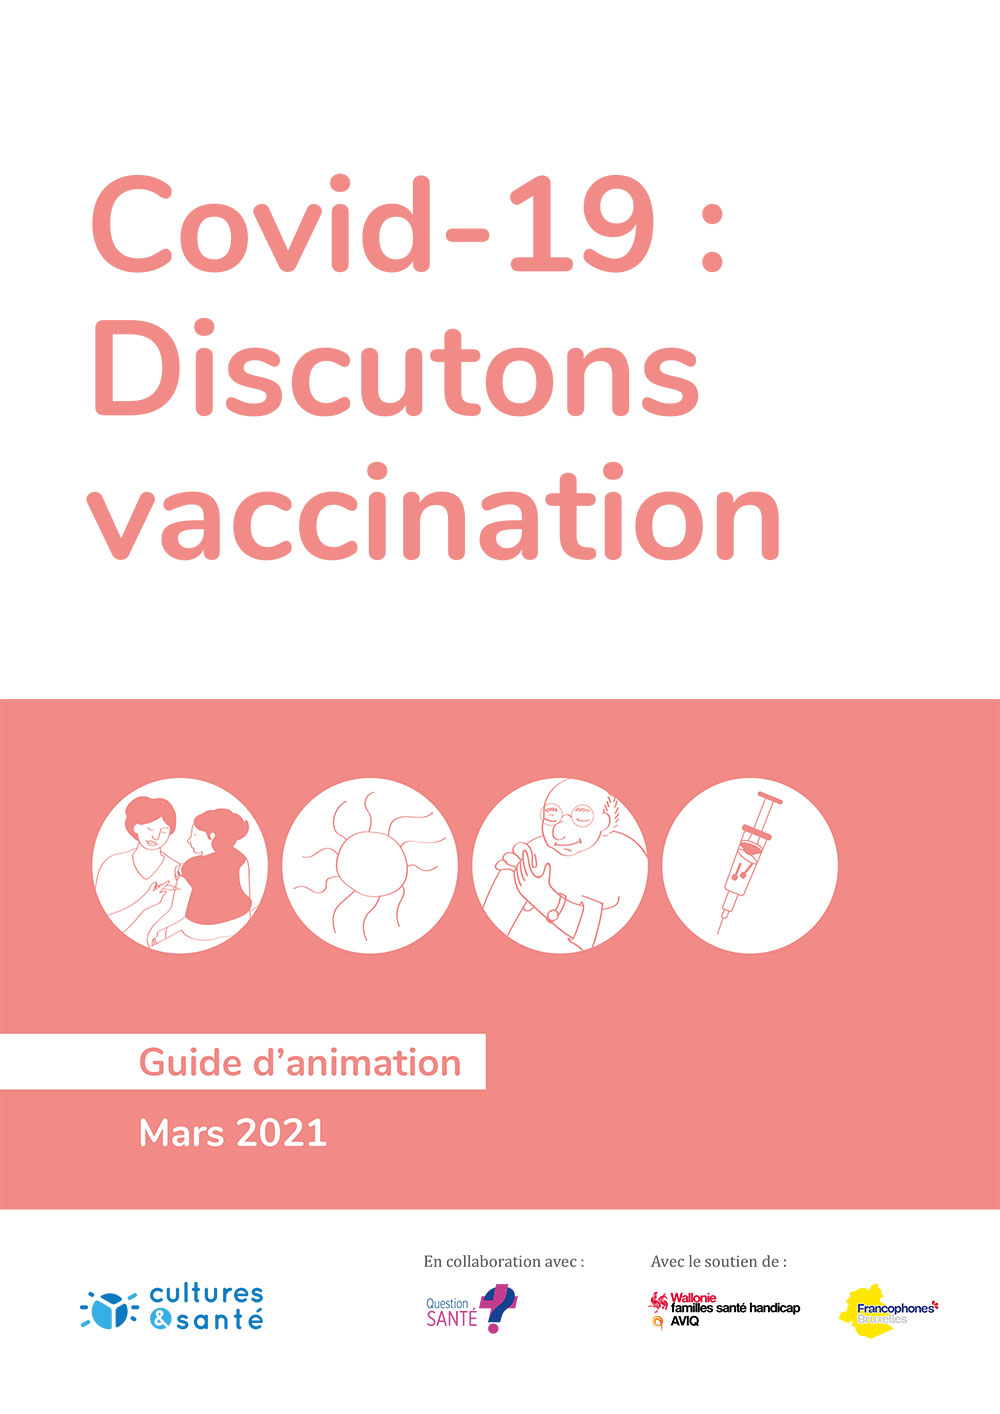 guide animation covid-19